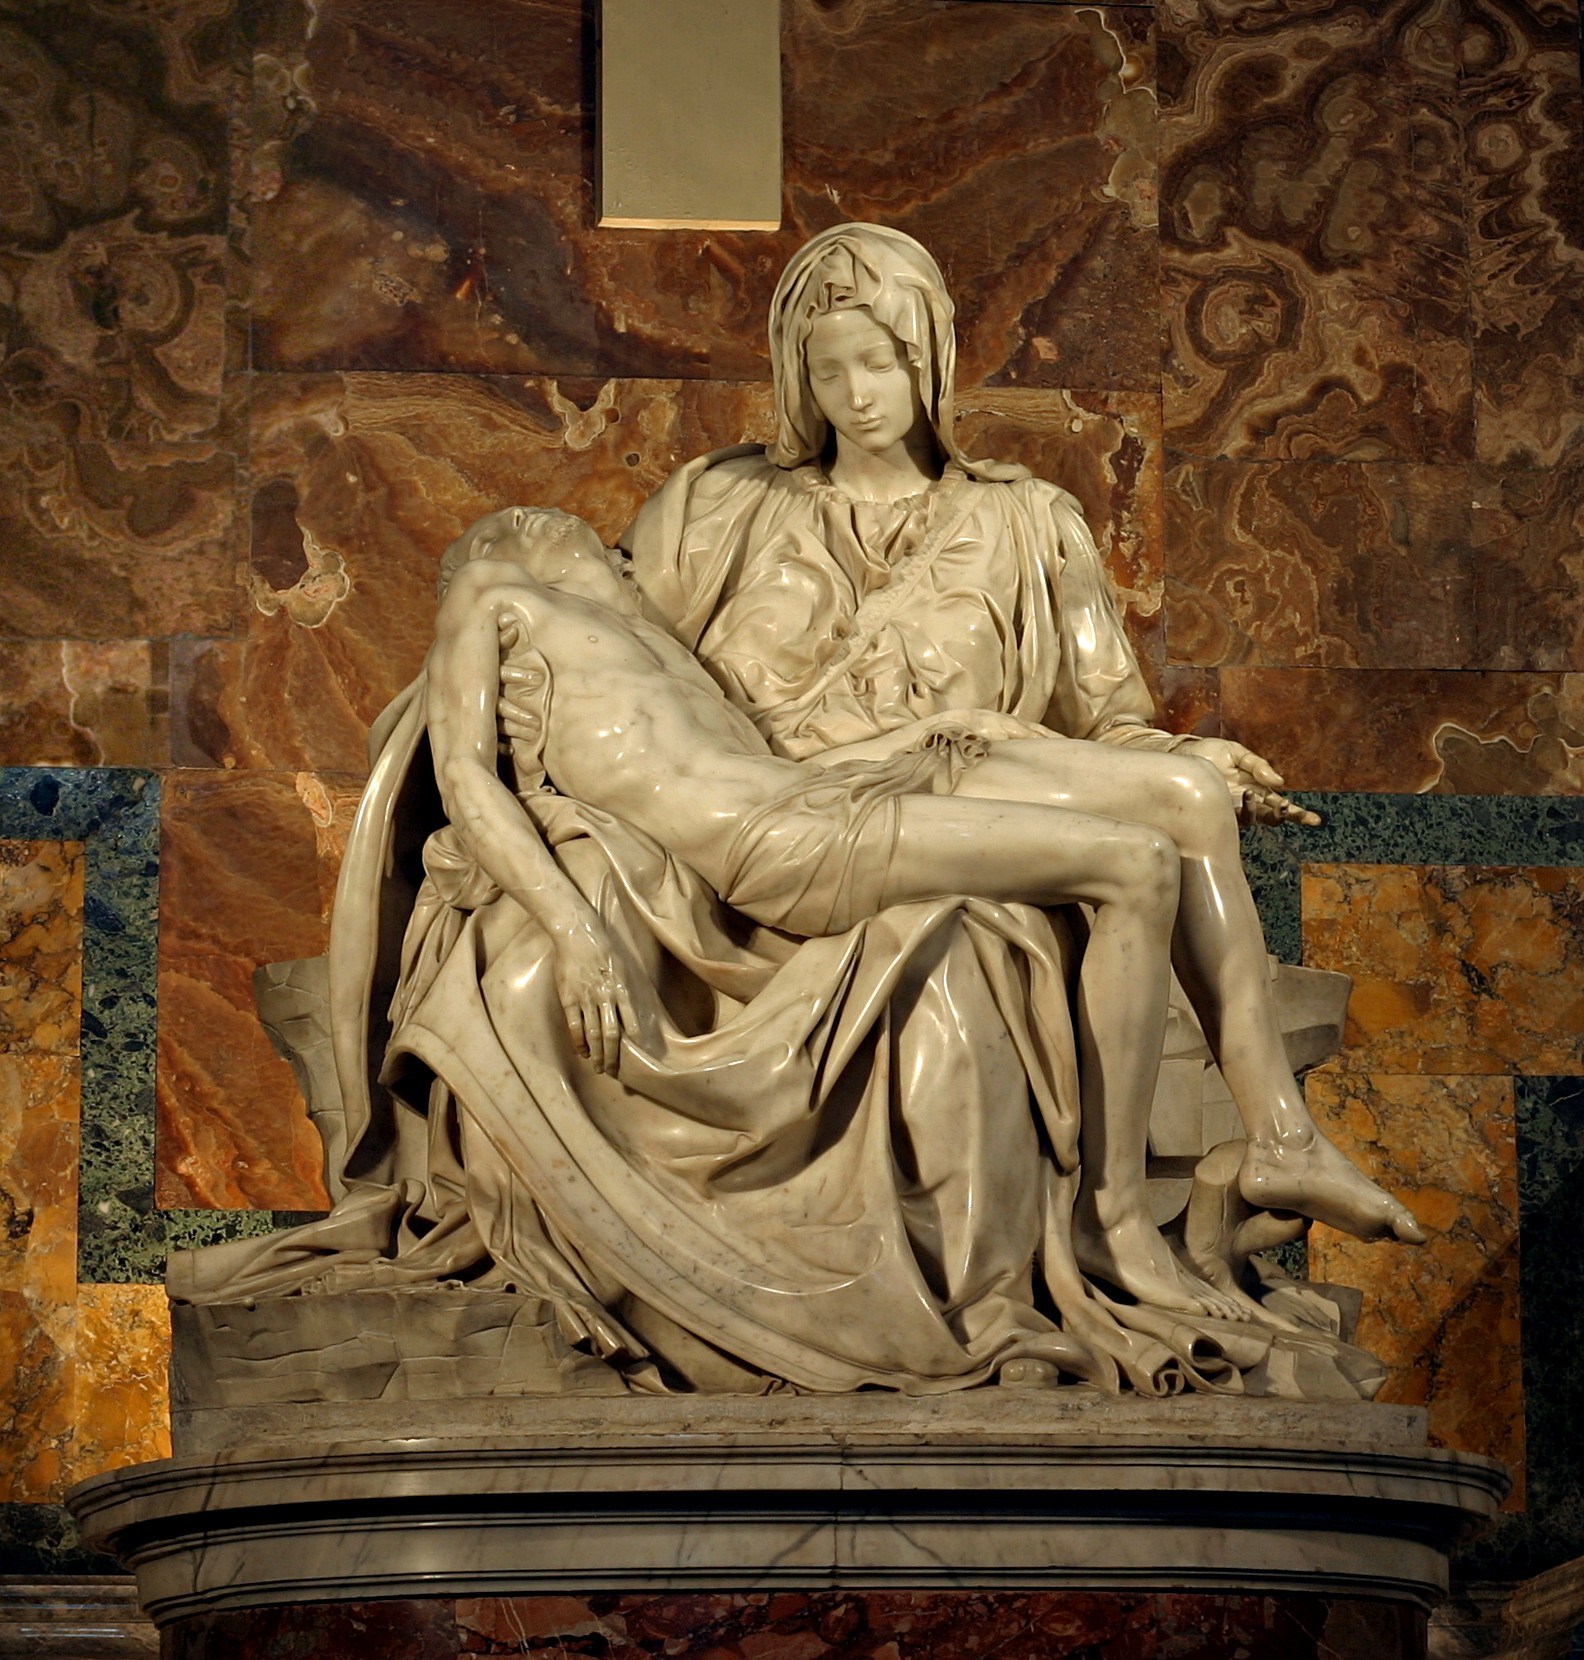 Michelangelo images - The Pieta Shows The Virgin Mary With The Body Of Jesus In Her Lap After The Crucifixion Michelangelo